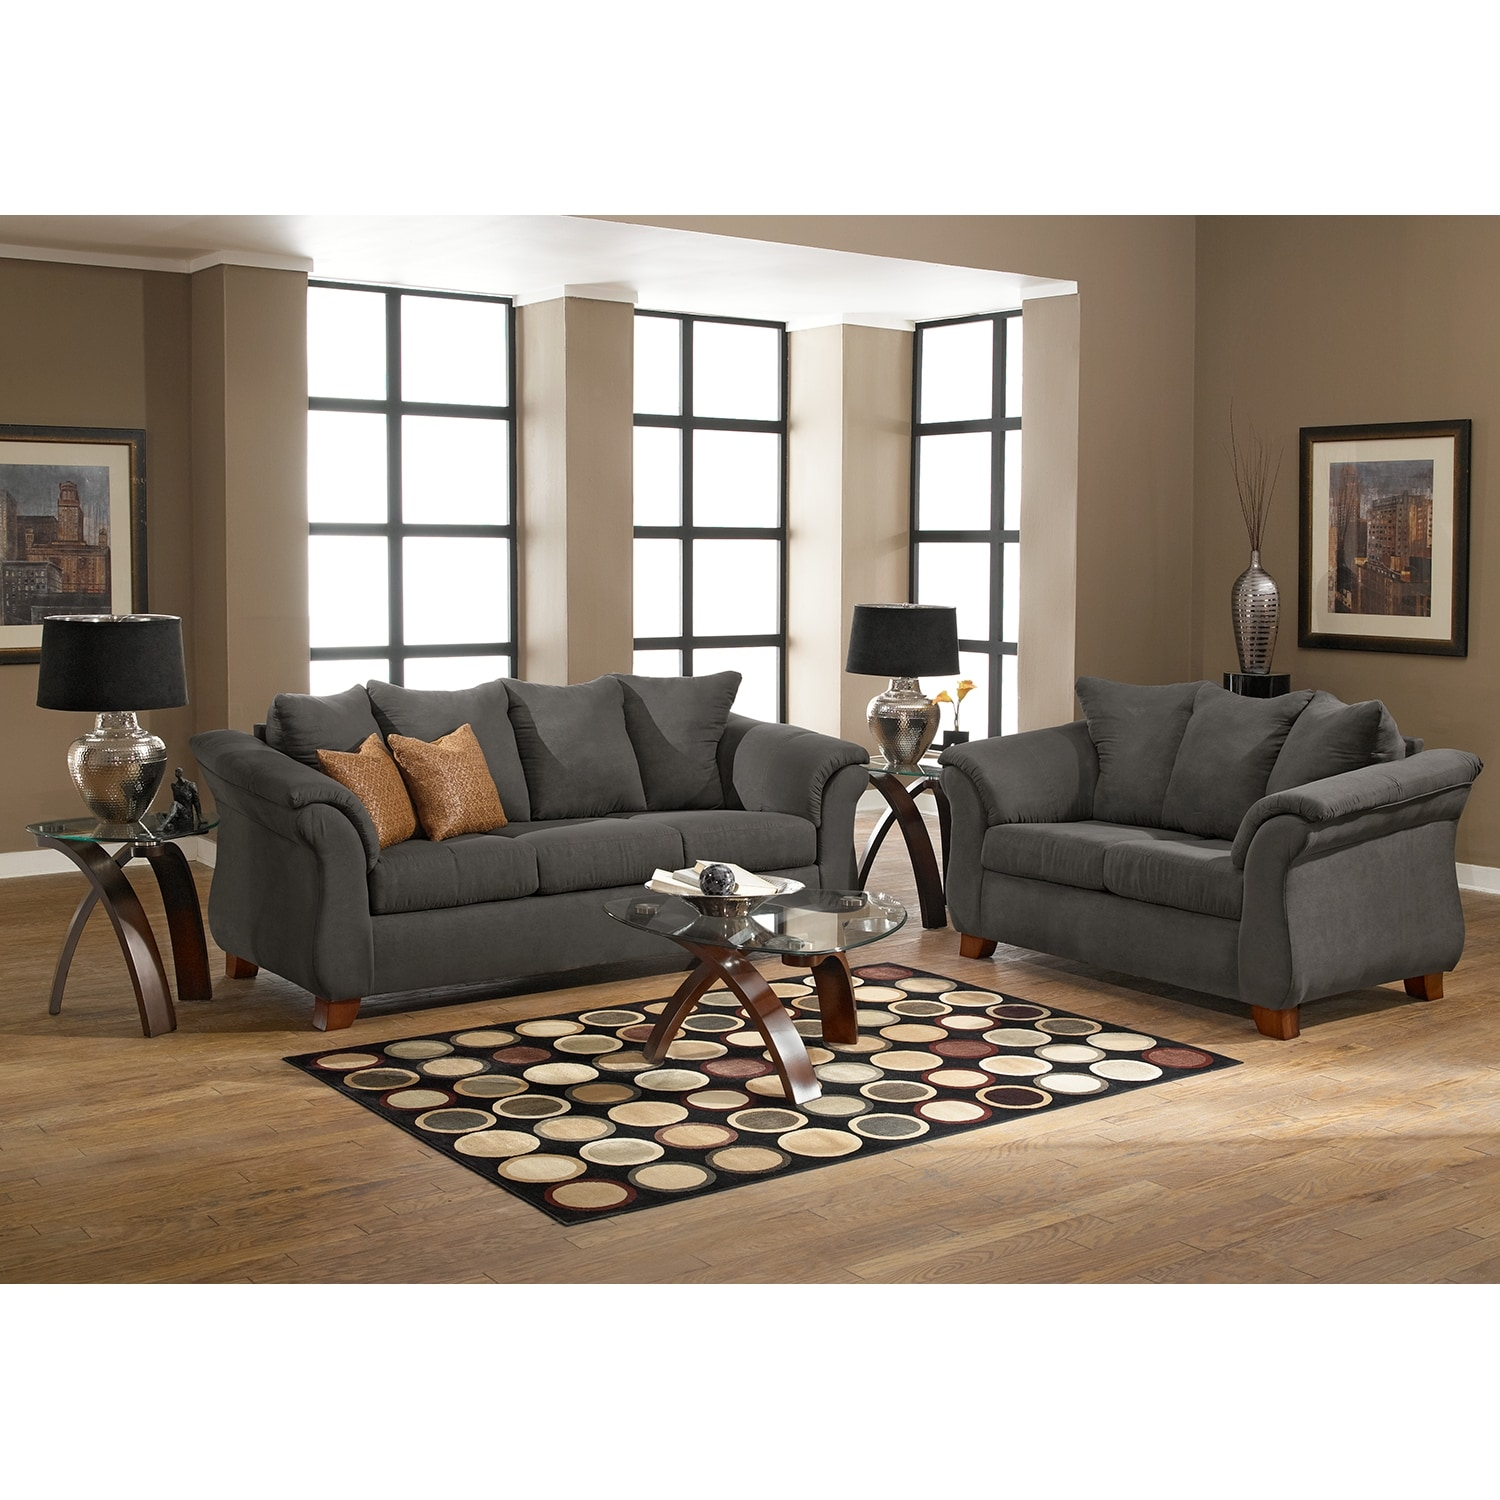 Adrian sofa graphite american signature furniture for American signature couch